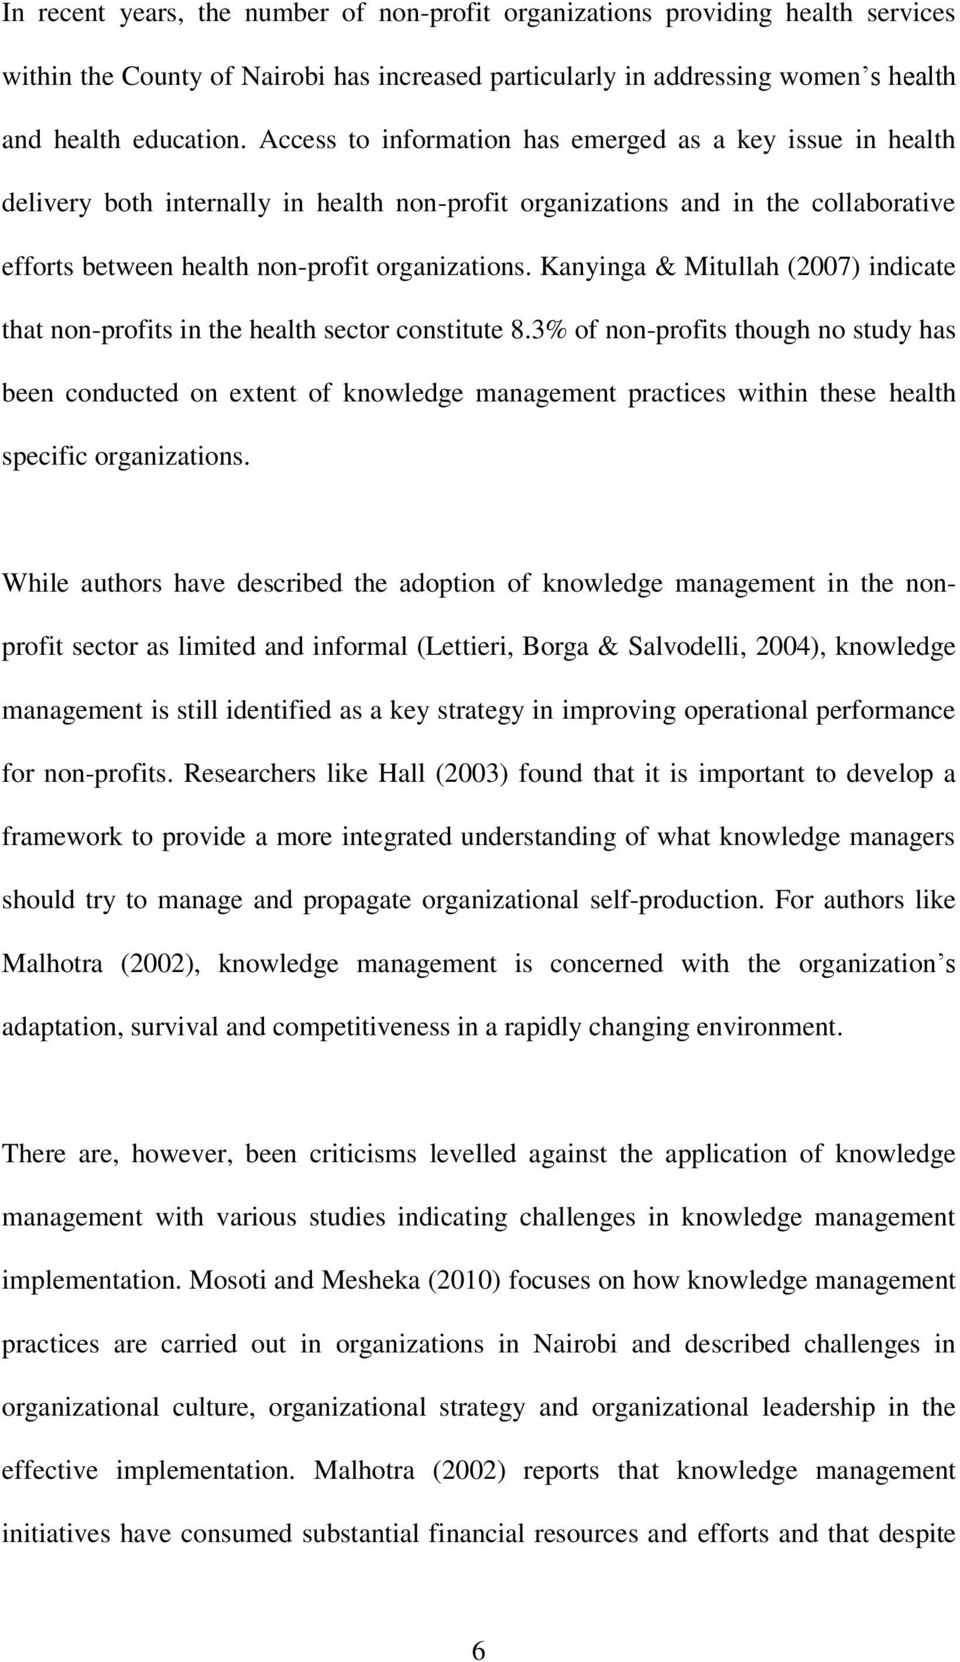 Kanyinga & Mitullah (2007) indicate that non-profits in the health sector constitute 8.